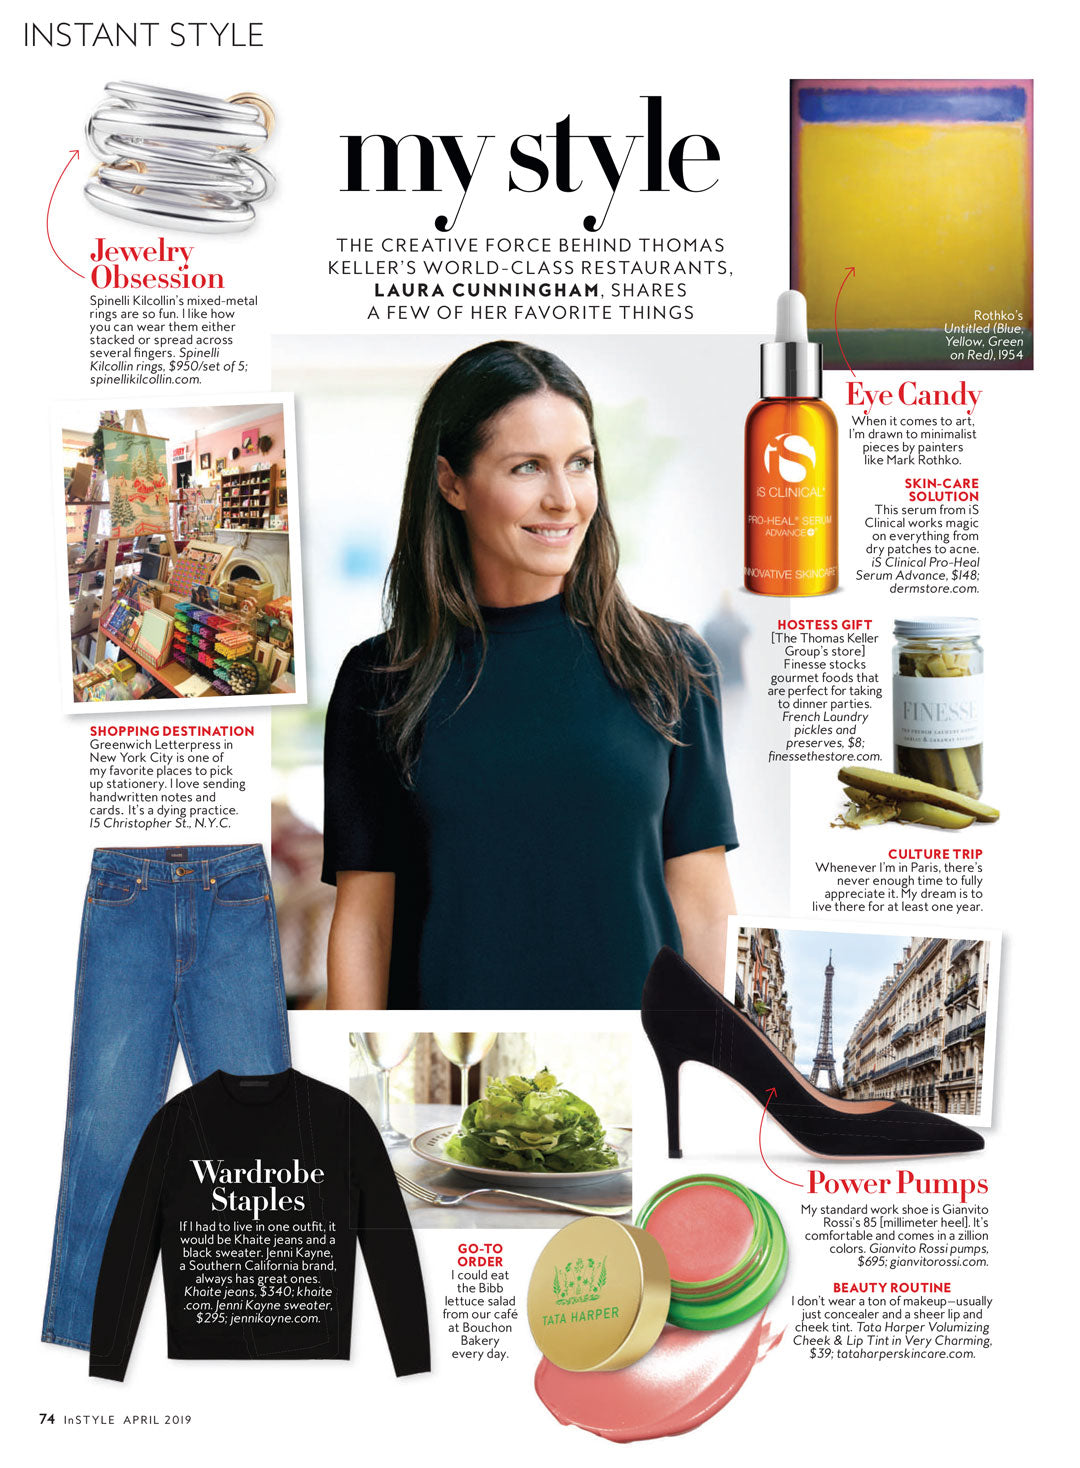 Spinelli Kilcollin featured in InStyle April 2019 issue